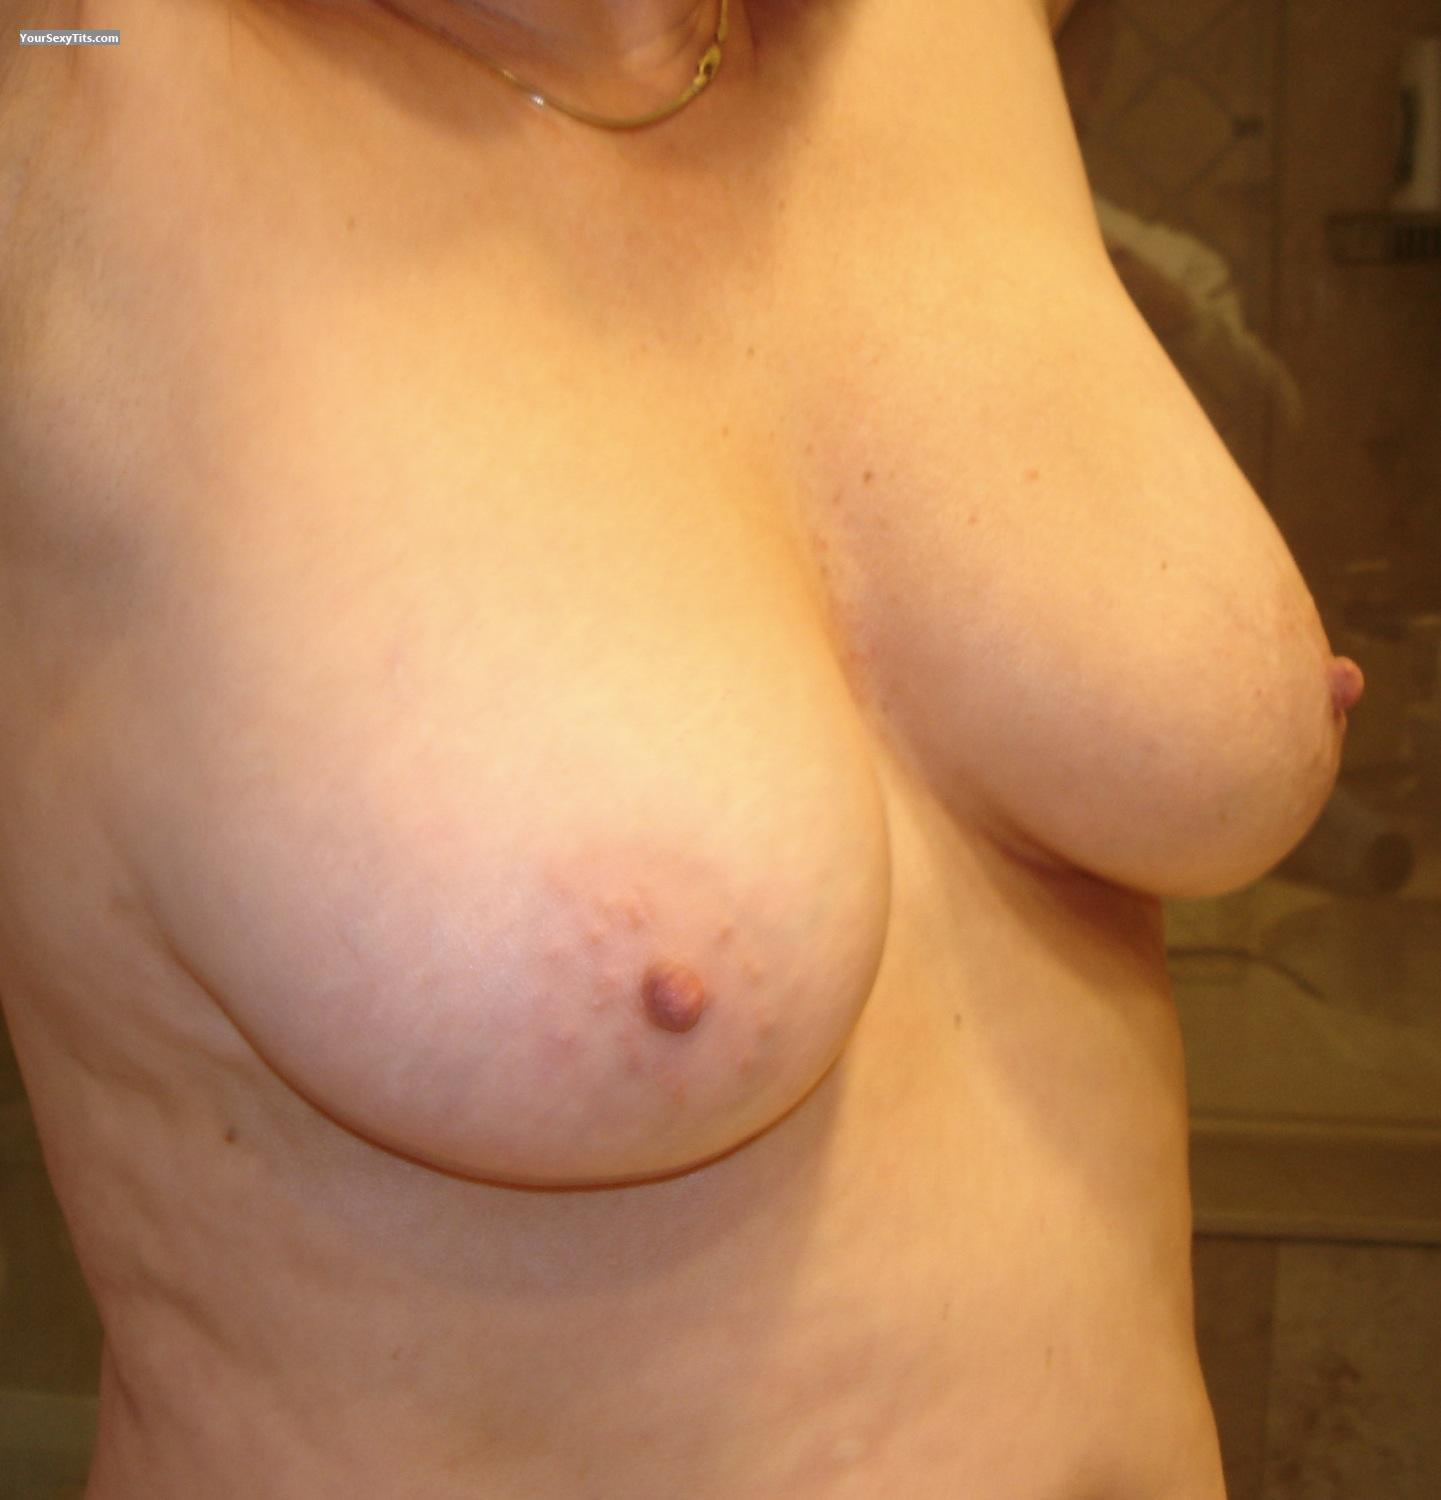 Tit Flash: Big Tits - Dees from Canada